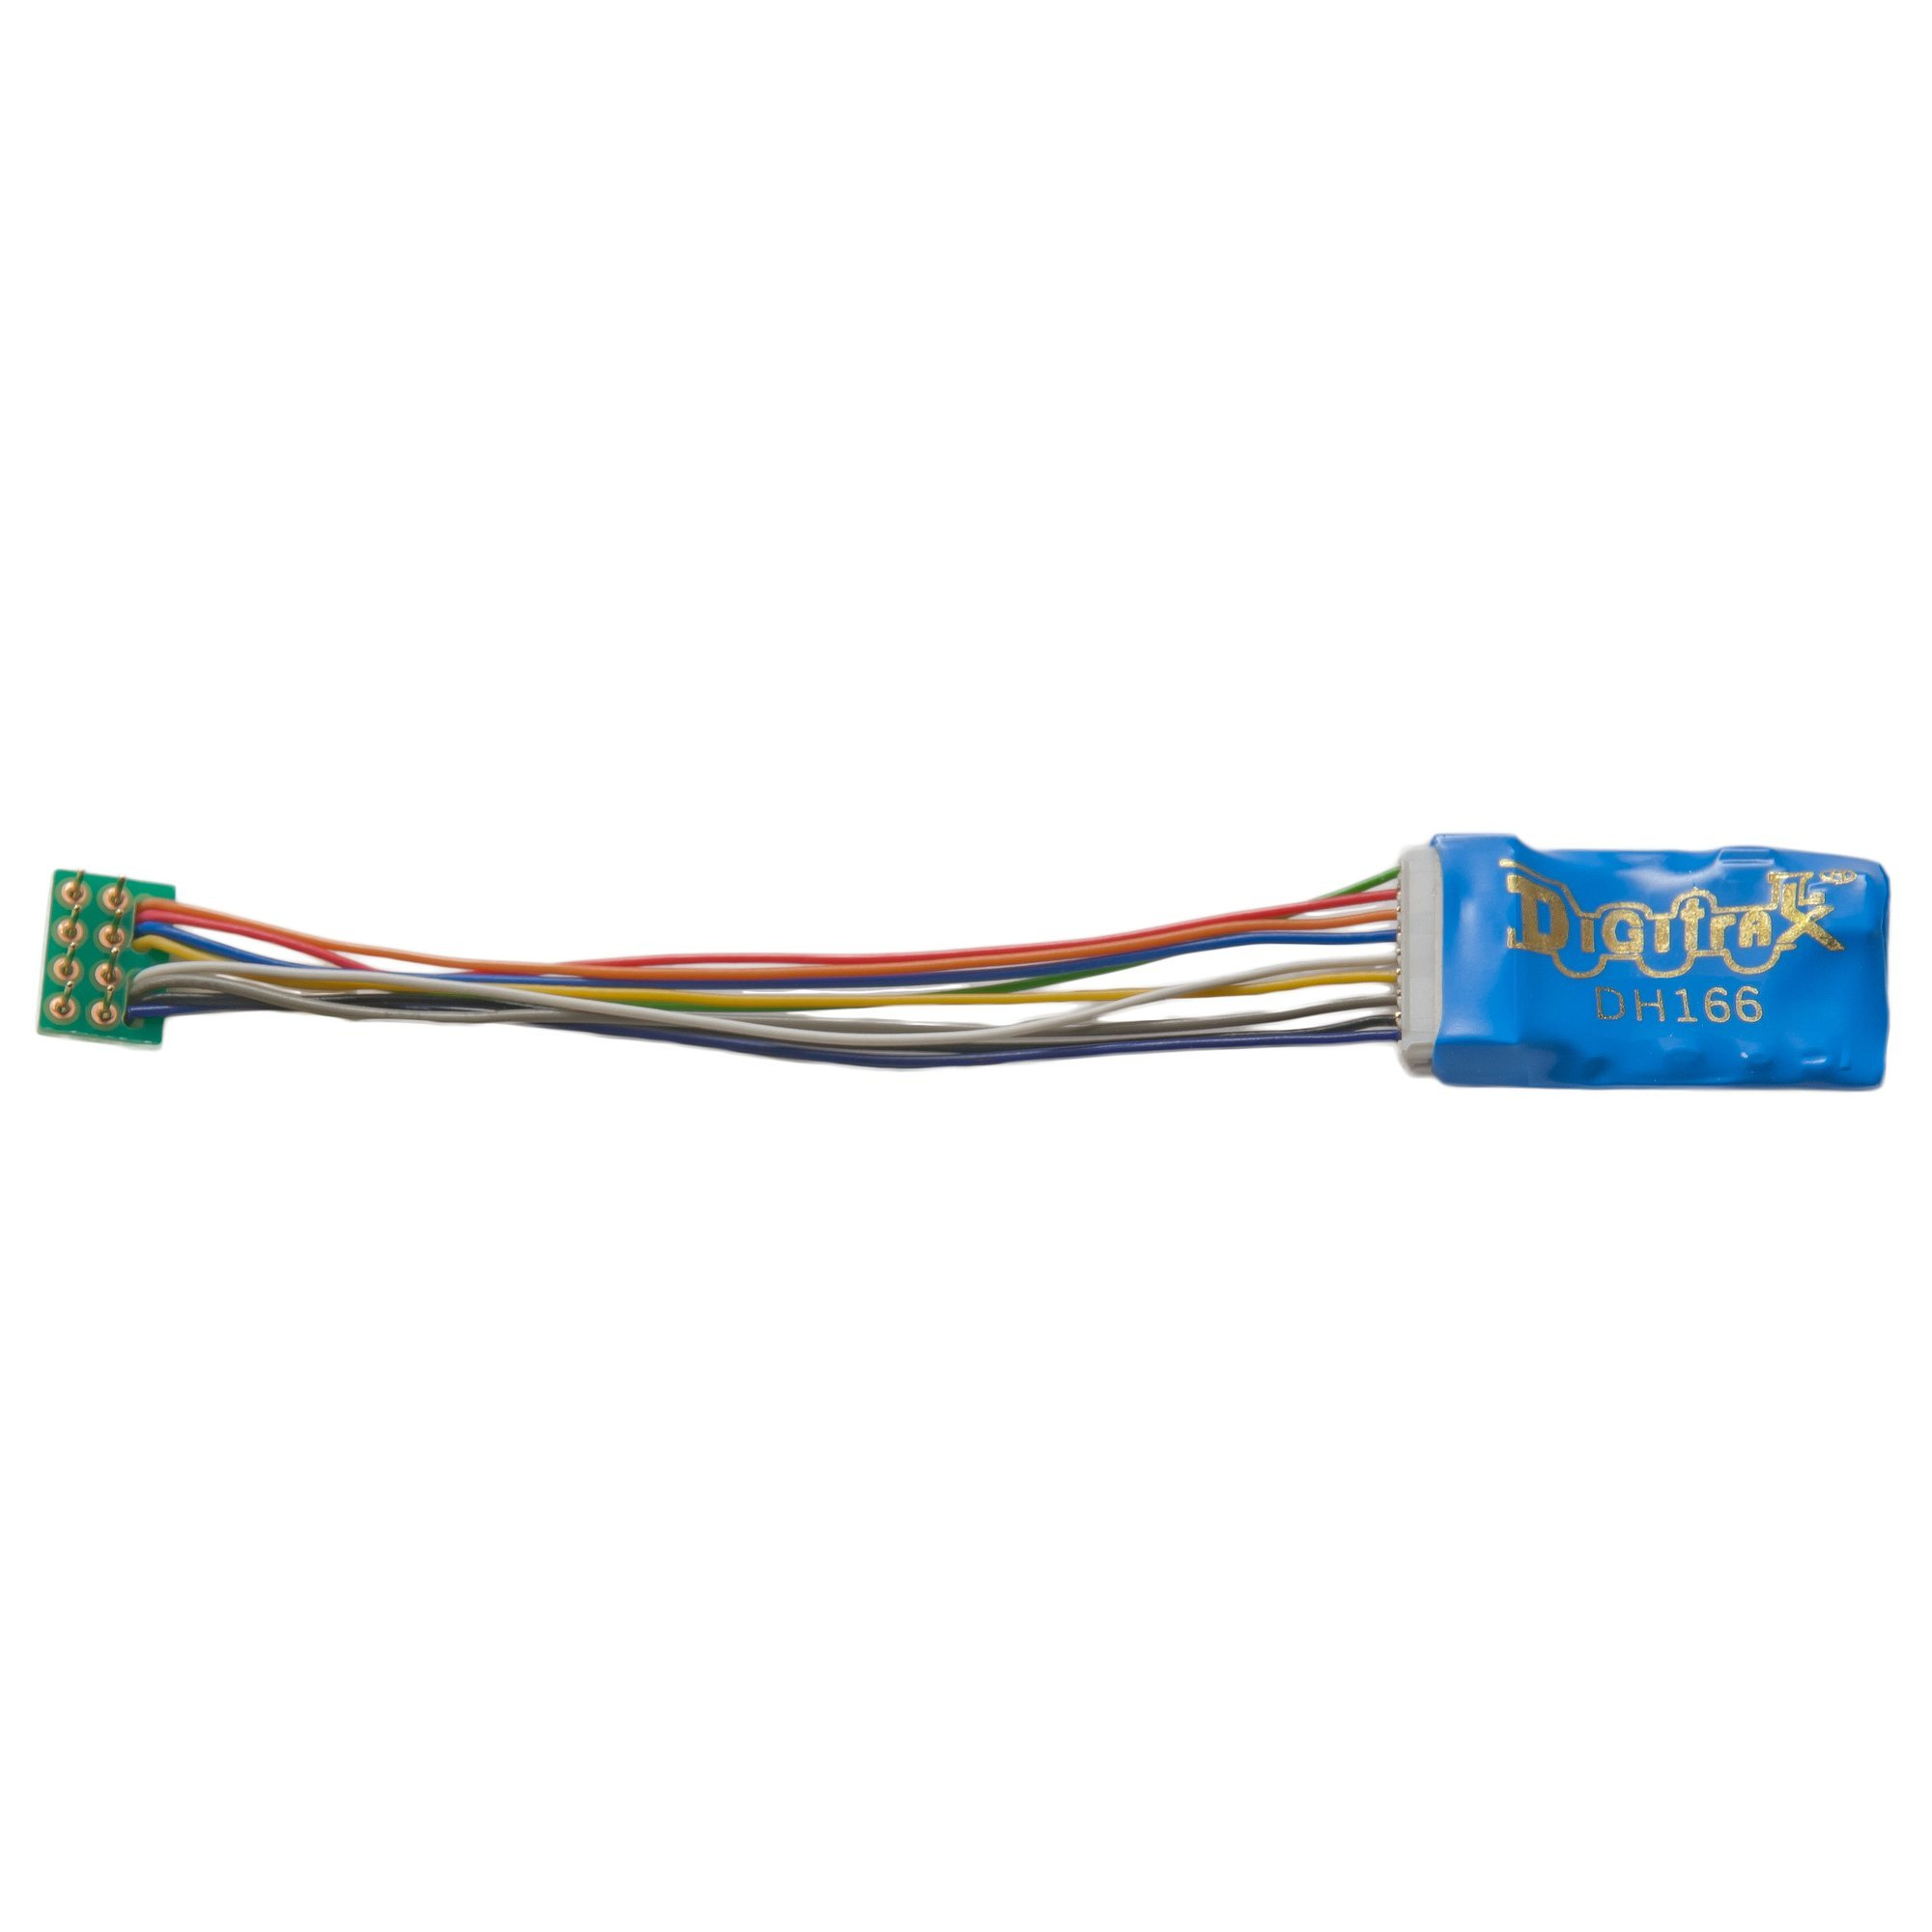 Digitrax DGTDH166P HO DCC Decoder Prem S6, 3.2''Wires 6FN 8-Pin 1.5A by Digitrax